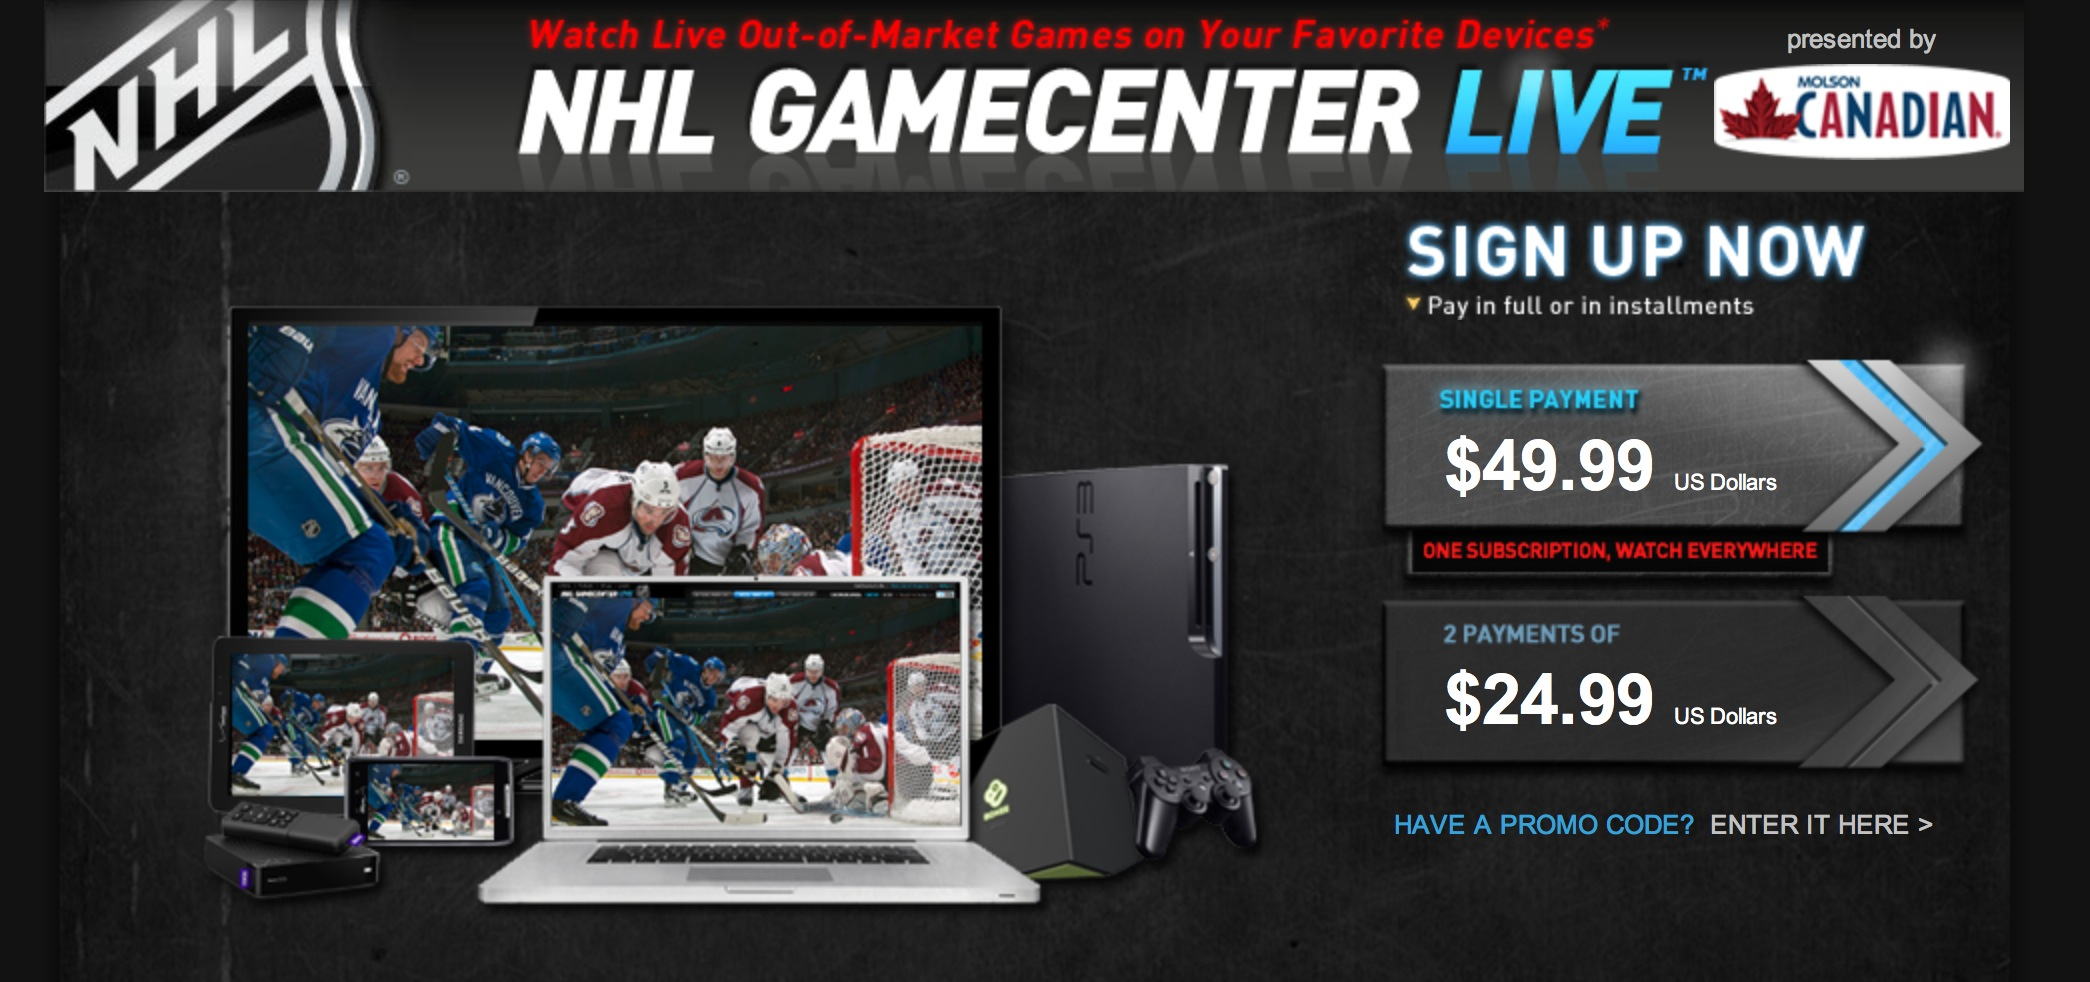 Expired NHL GameCenter Coupons